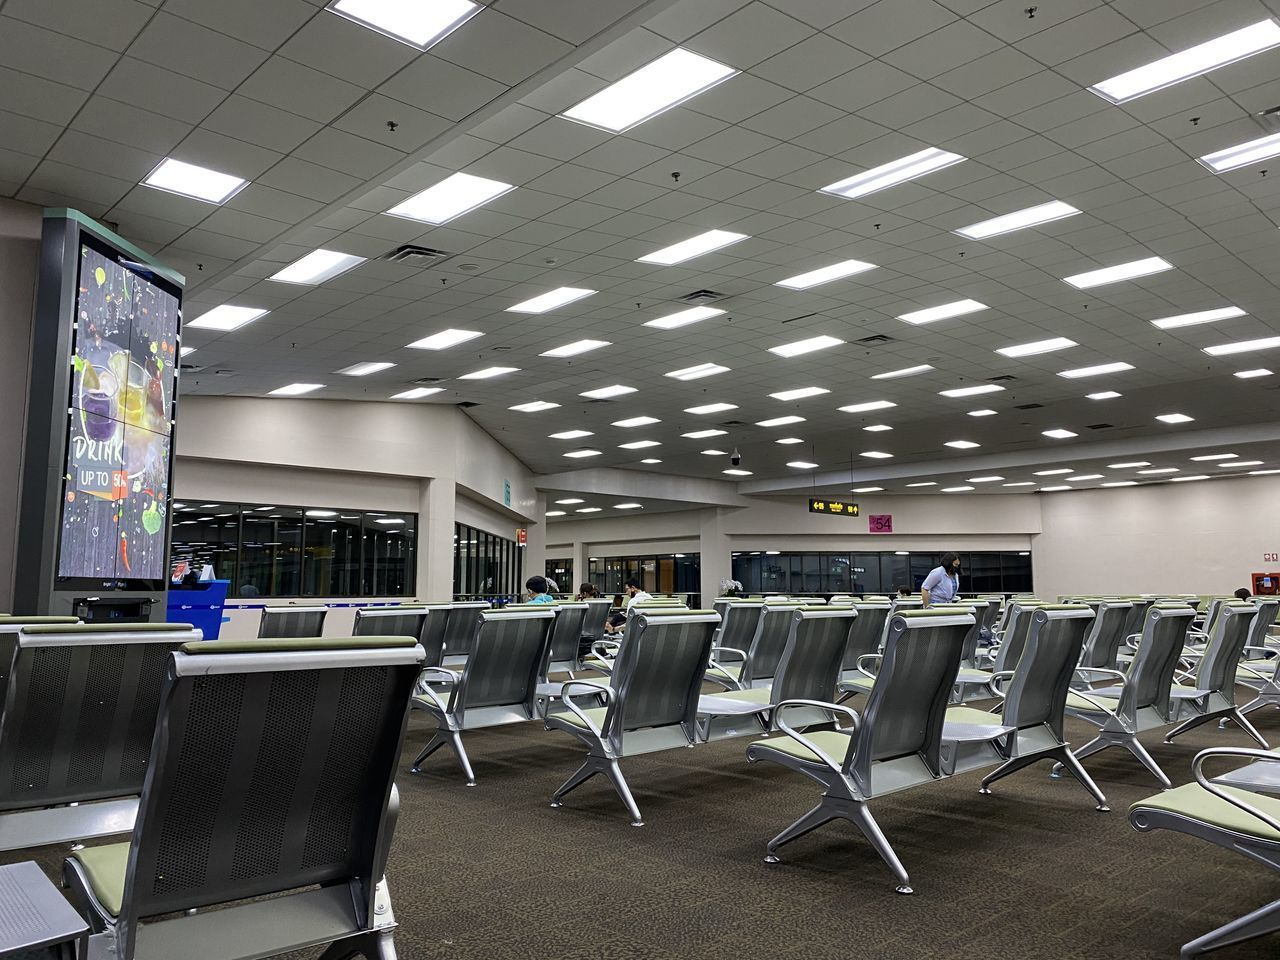 EMPTY CHAIRS AND TABLE IN AIRPORT